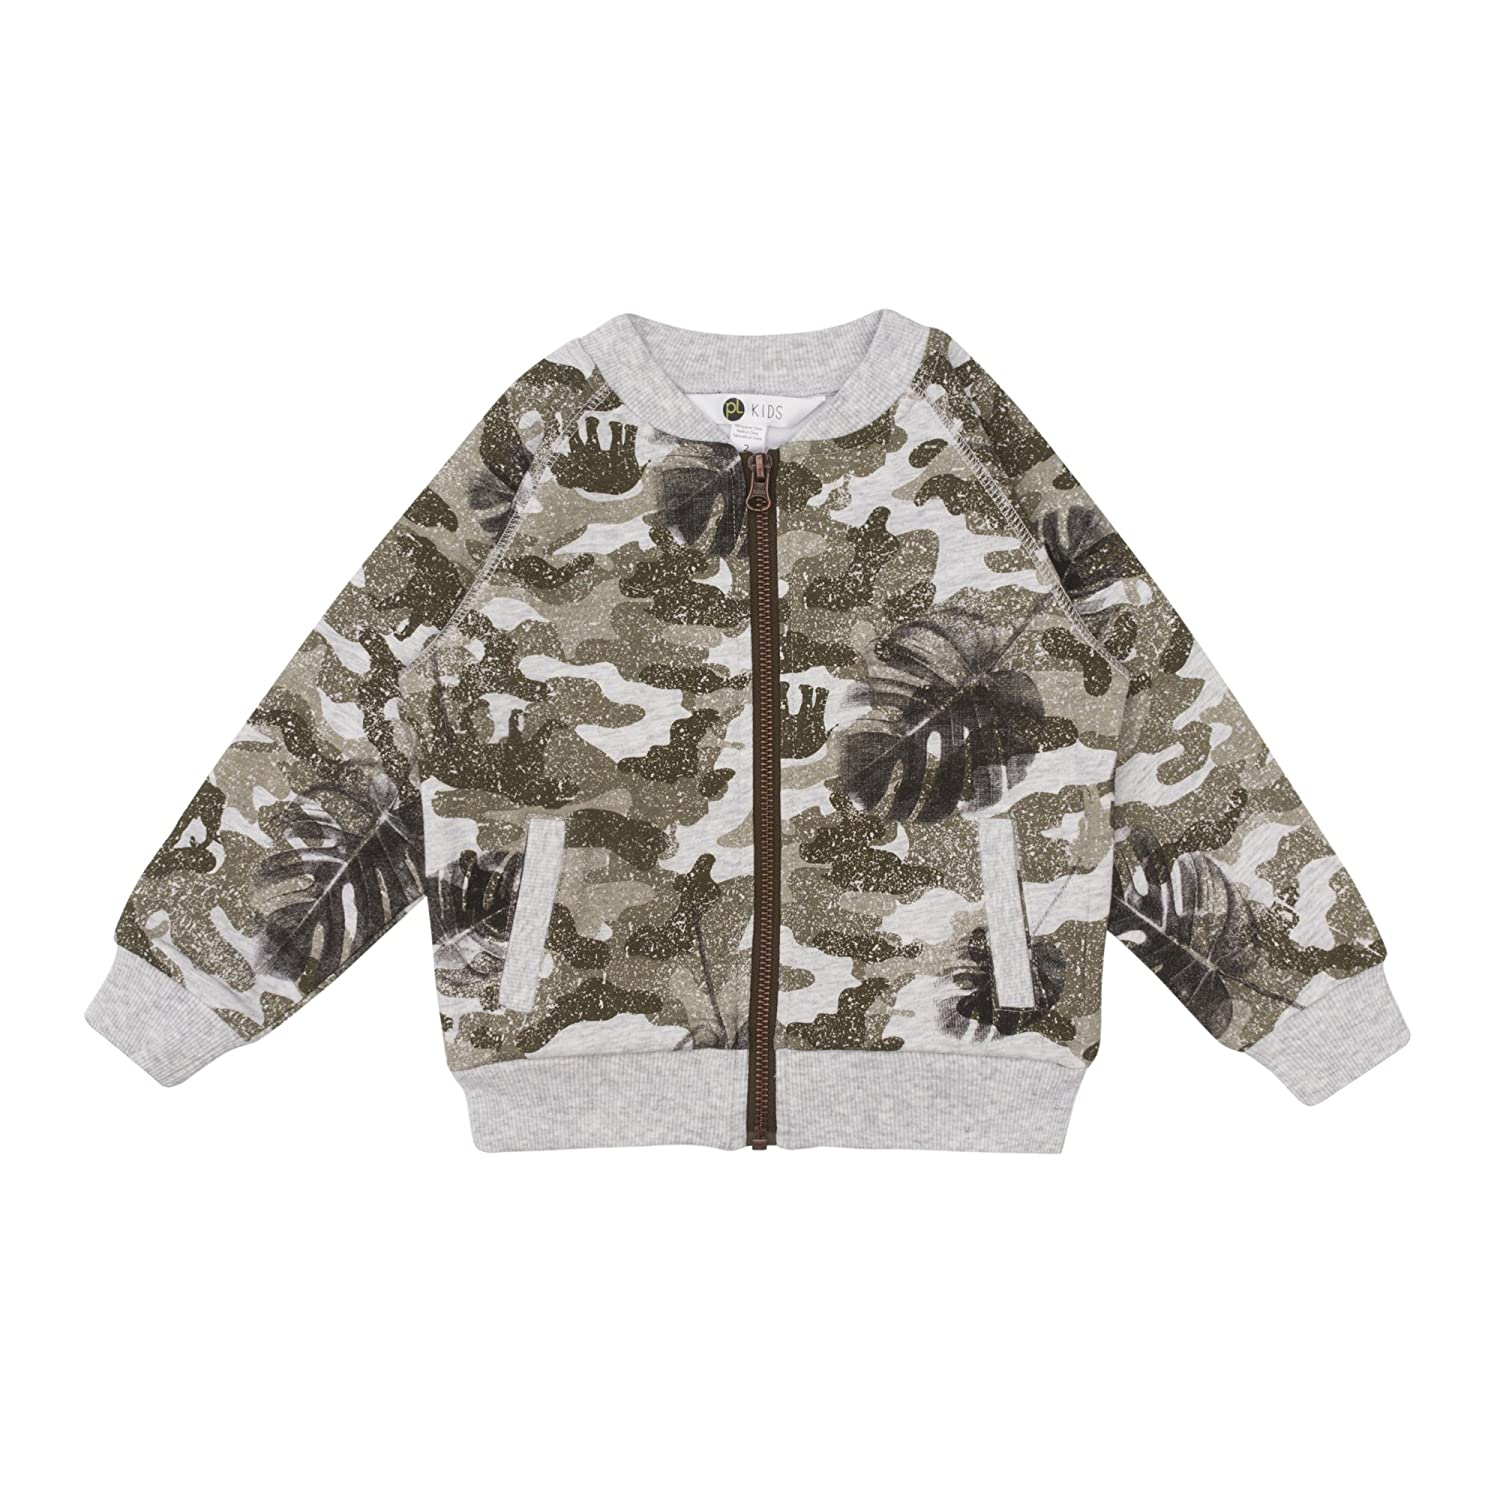 Comfortable and Stylish Petit Lem Big Jacket Top for Boys